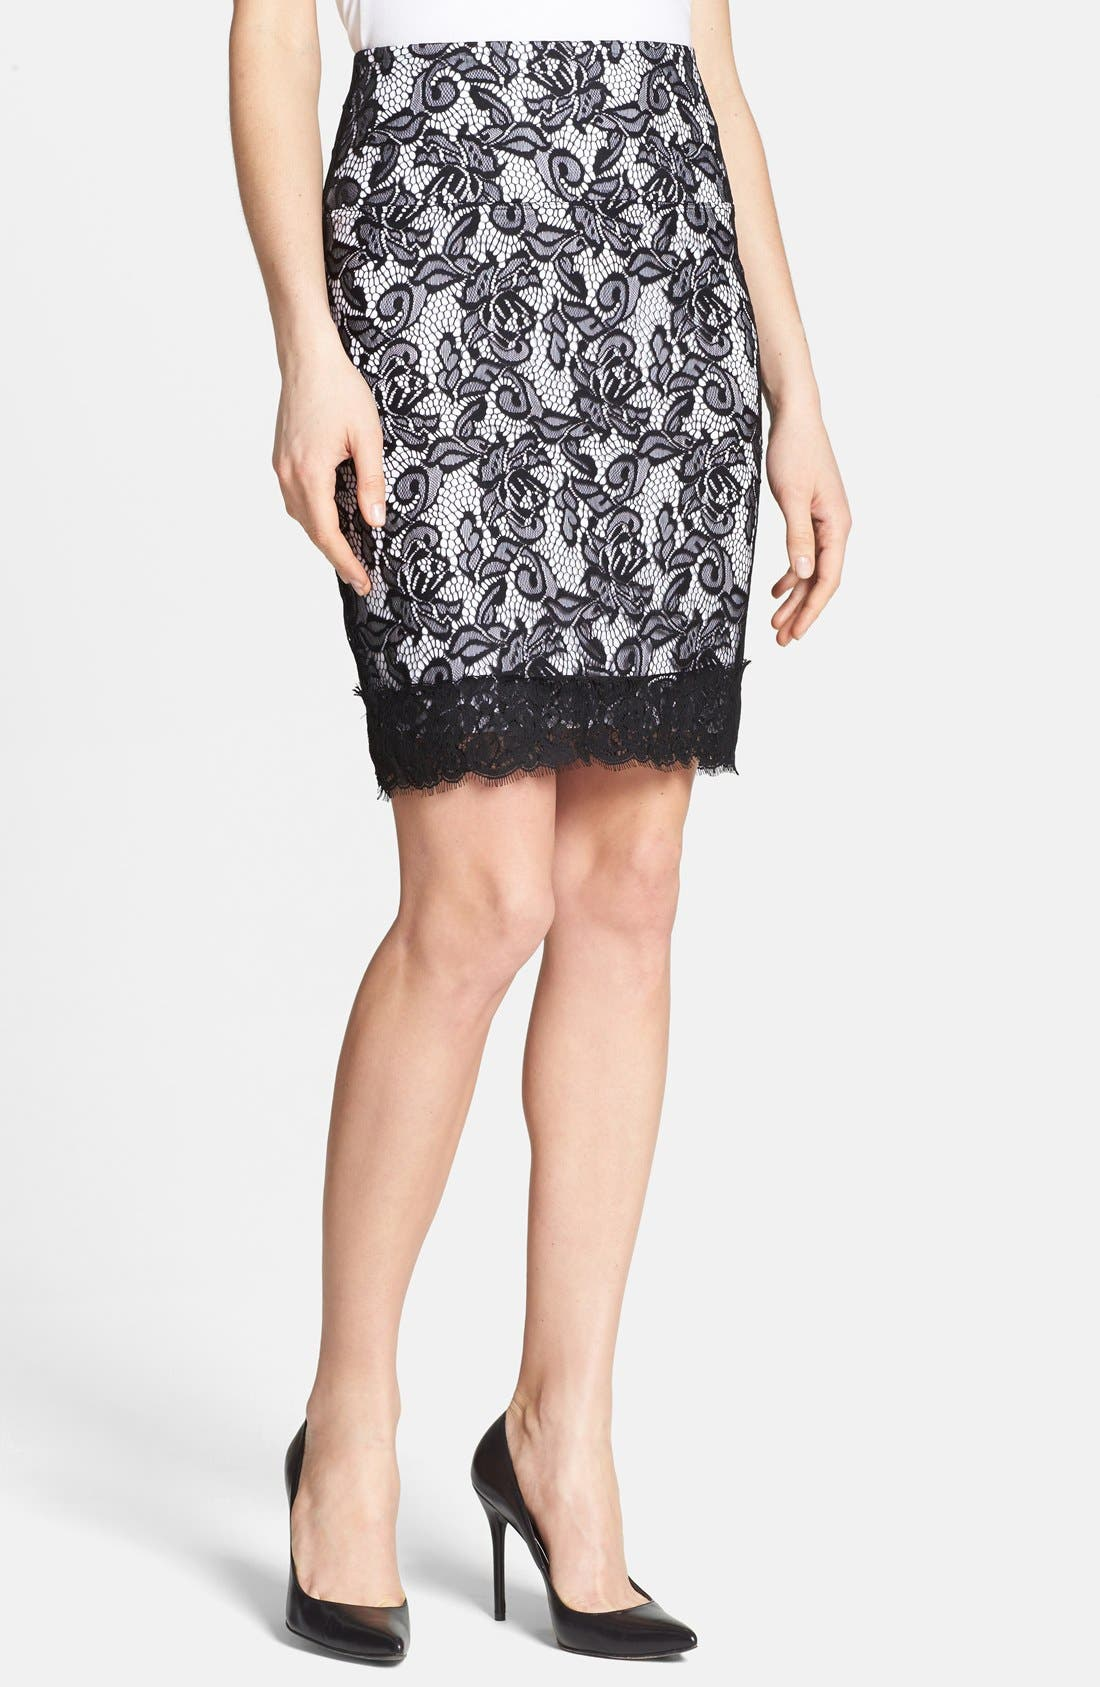 Alternate Image 1 Selected - Lyssé Lace Overlay Control Top Pencil Skirt